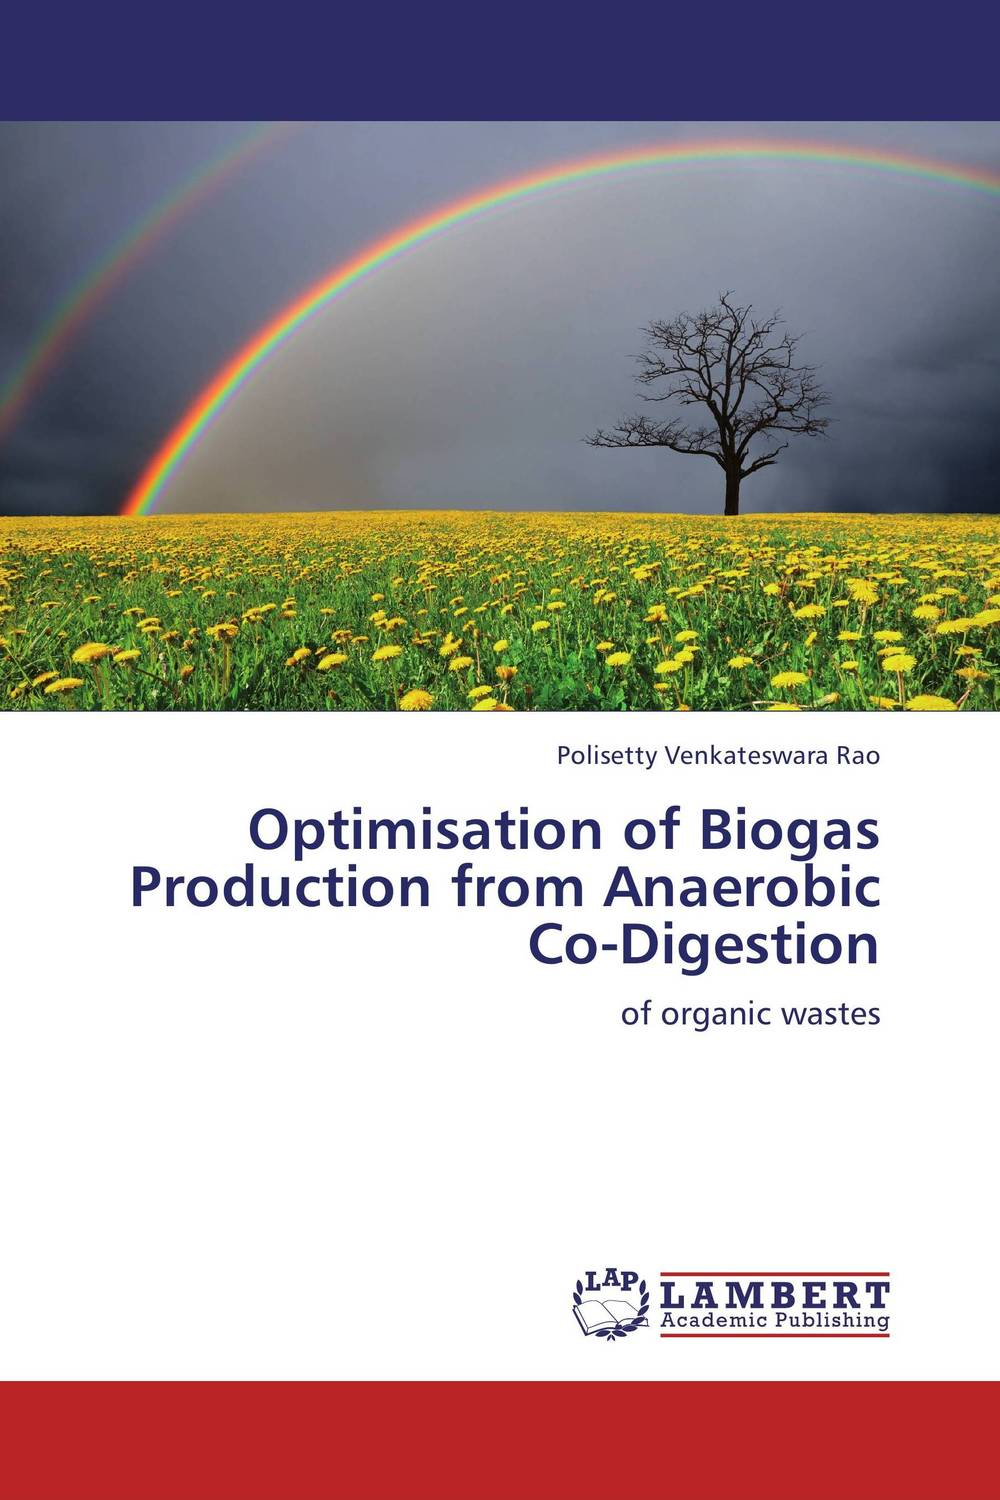 Optimisation of Biogas Production from Anaerobic Co-Digestion sadat khattab usama abdul raouf and tsutomu kodaki bio ethanol for future from woody biomass